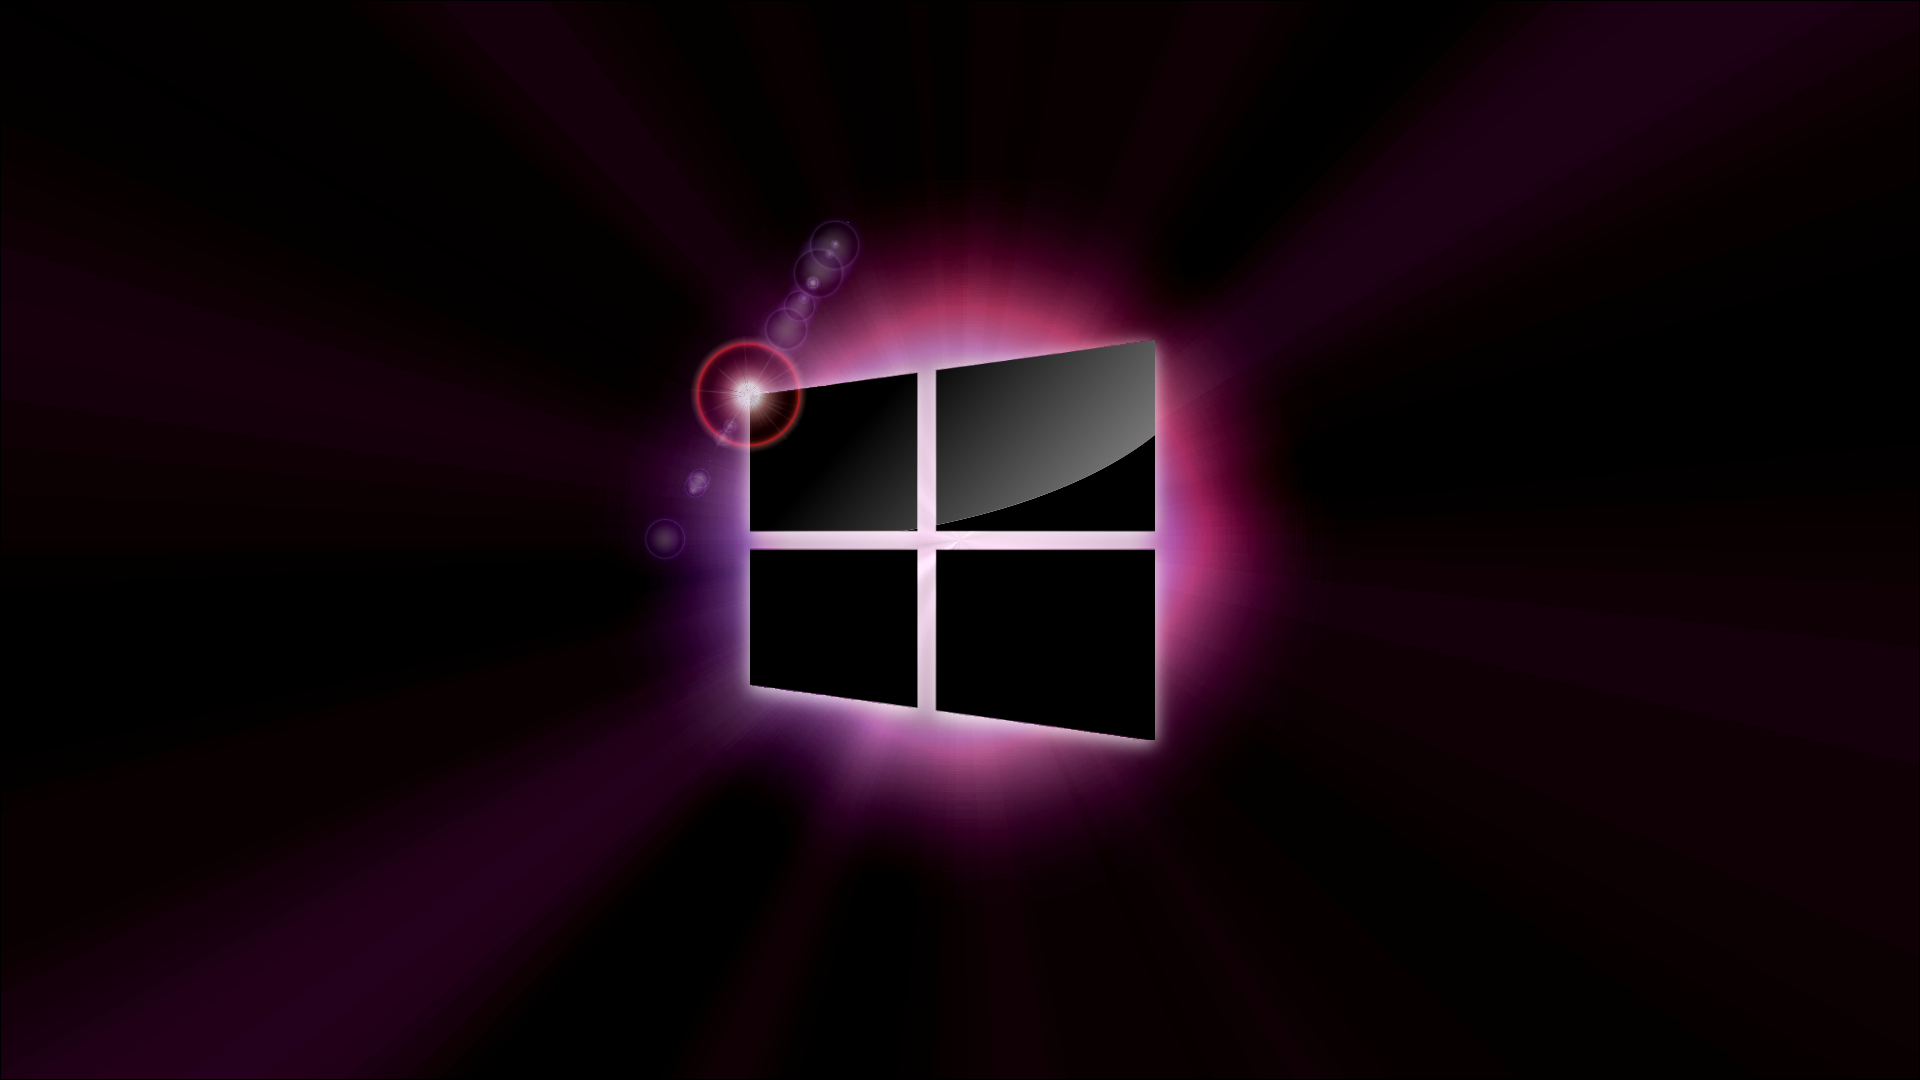 10 New Windows 8 Wallpaper Hd 3d For Desktop Full Hd 1920